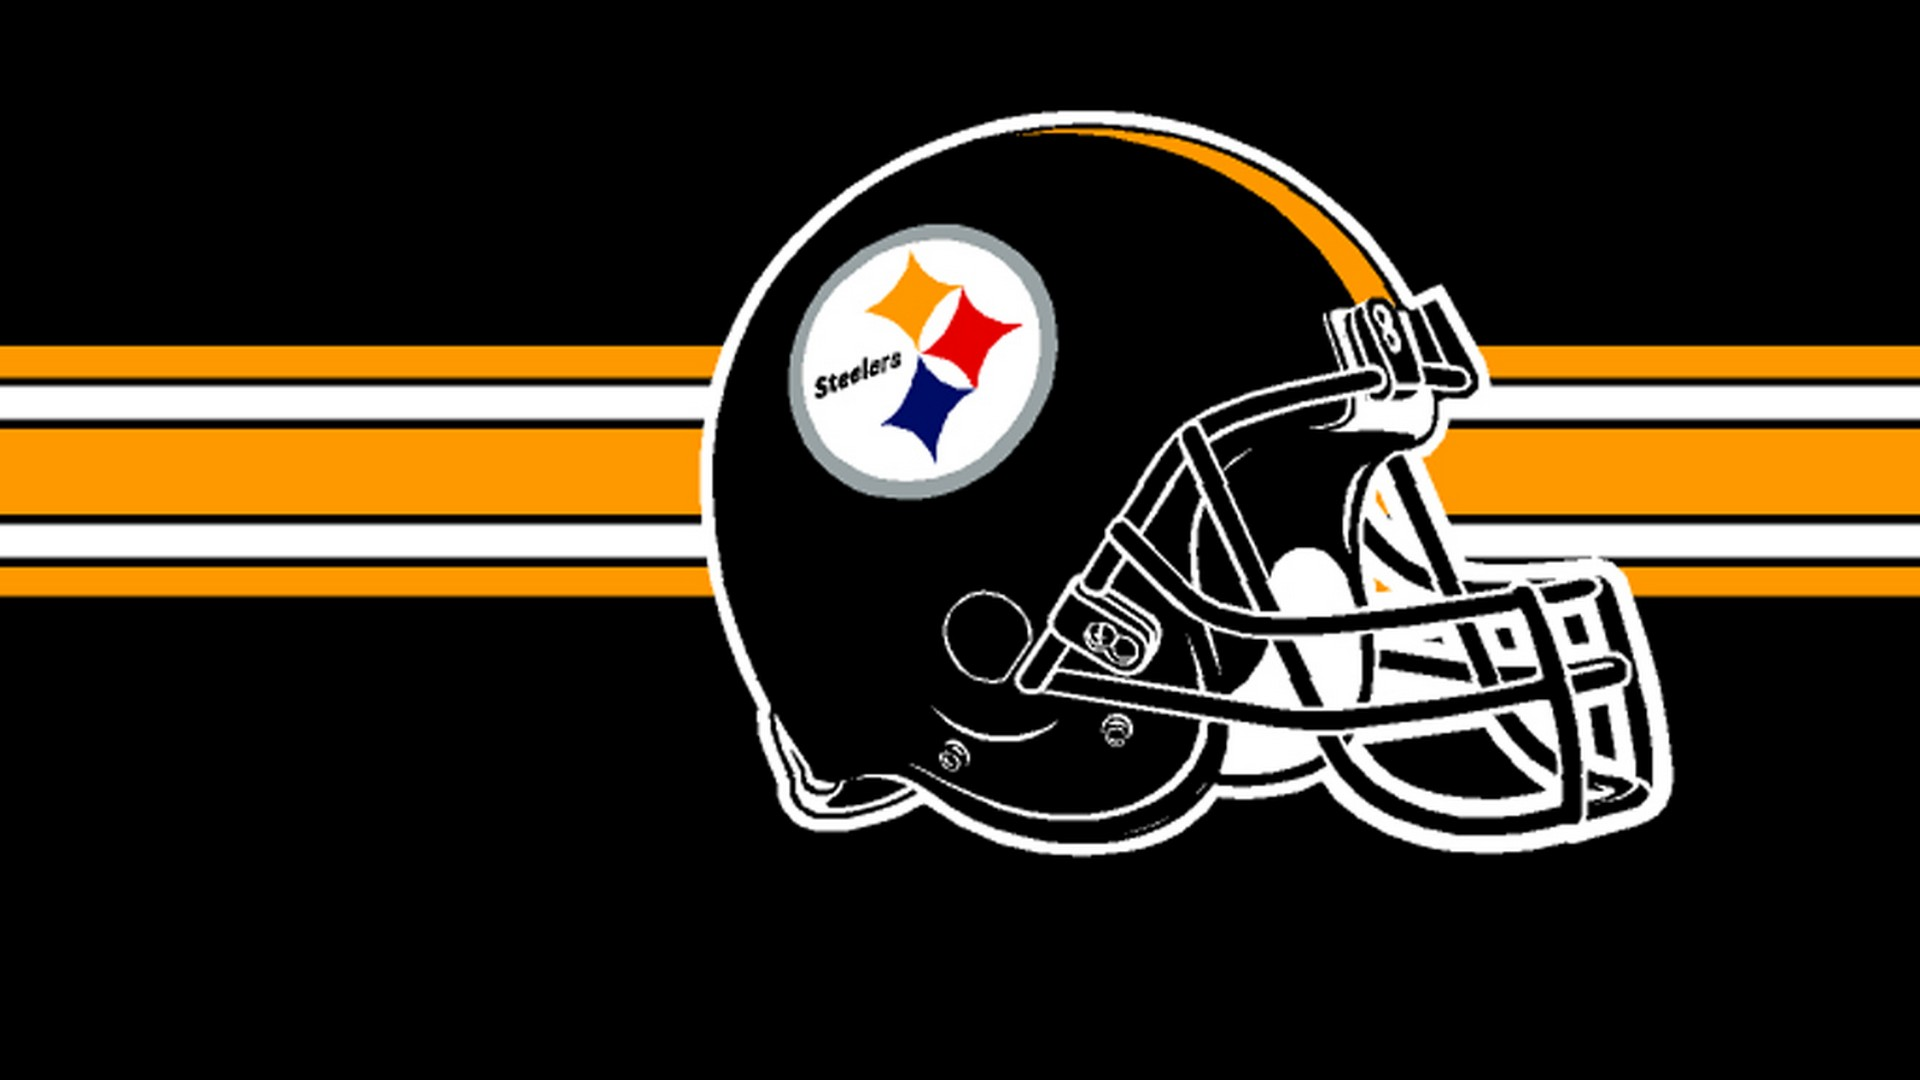 Steelers Football Wallpaper For Mac Backgrounds with resolution 1920x1080 pixel. You can make this wallpaper for your Mac or Windows Desktop Background, iPhone, Android or Tablet and another Smartphone device